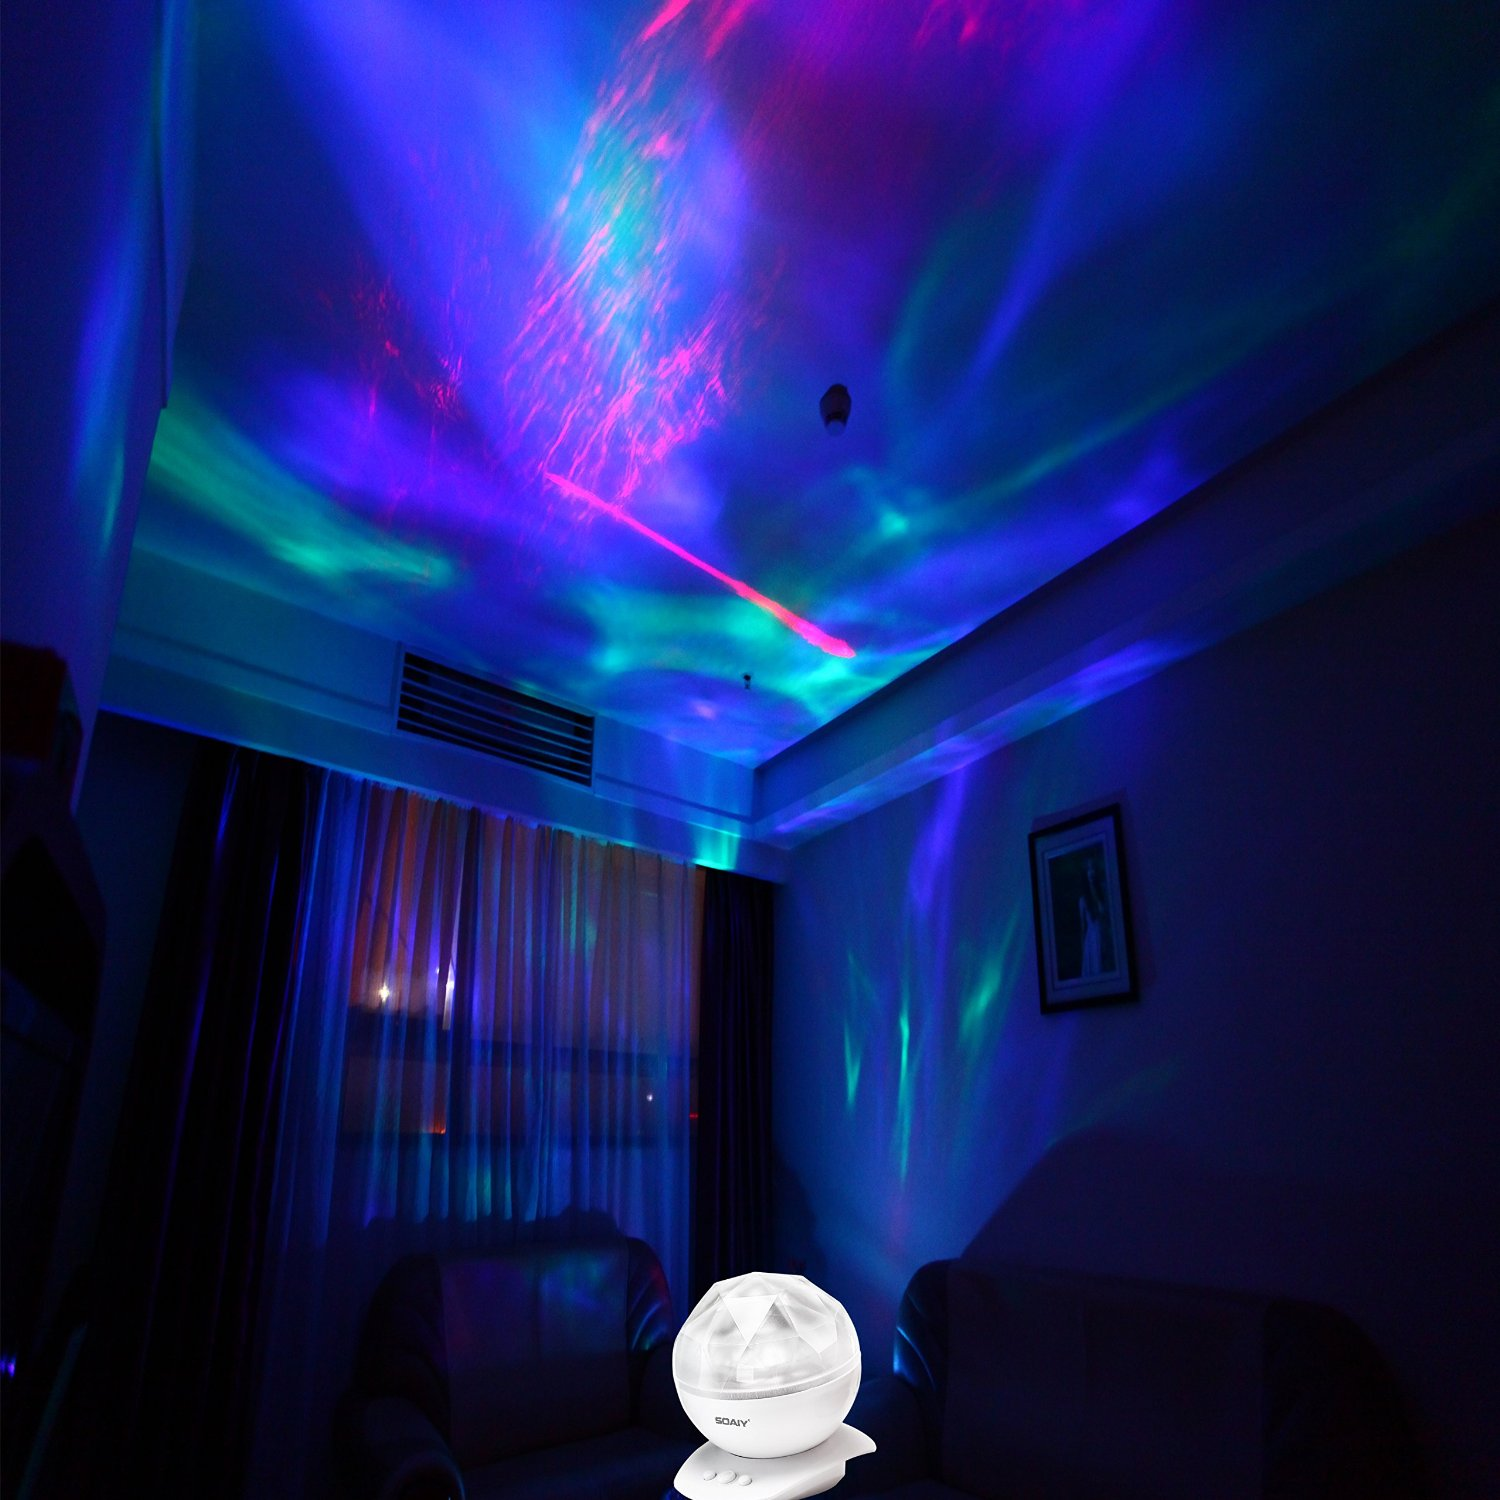 Best Nightlight For Sleep Soaiy Led Ocean Wave Night Light Projector Sleep Soothing Color Changing White Noise Machine With 8 Colors Light Show Projection Built In Soft Music